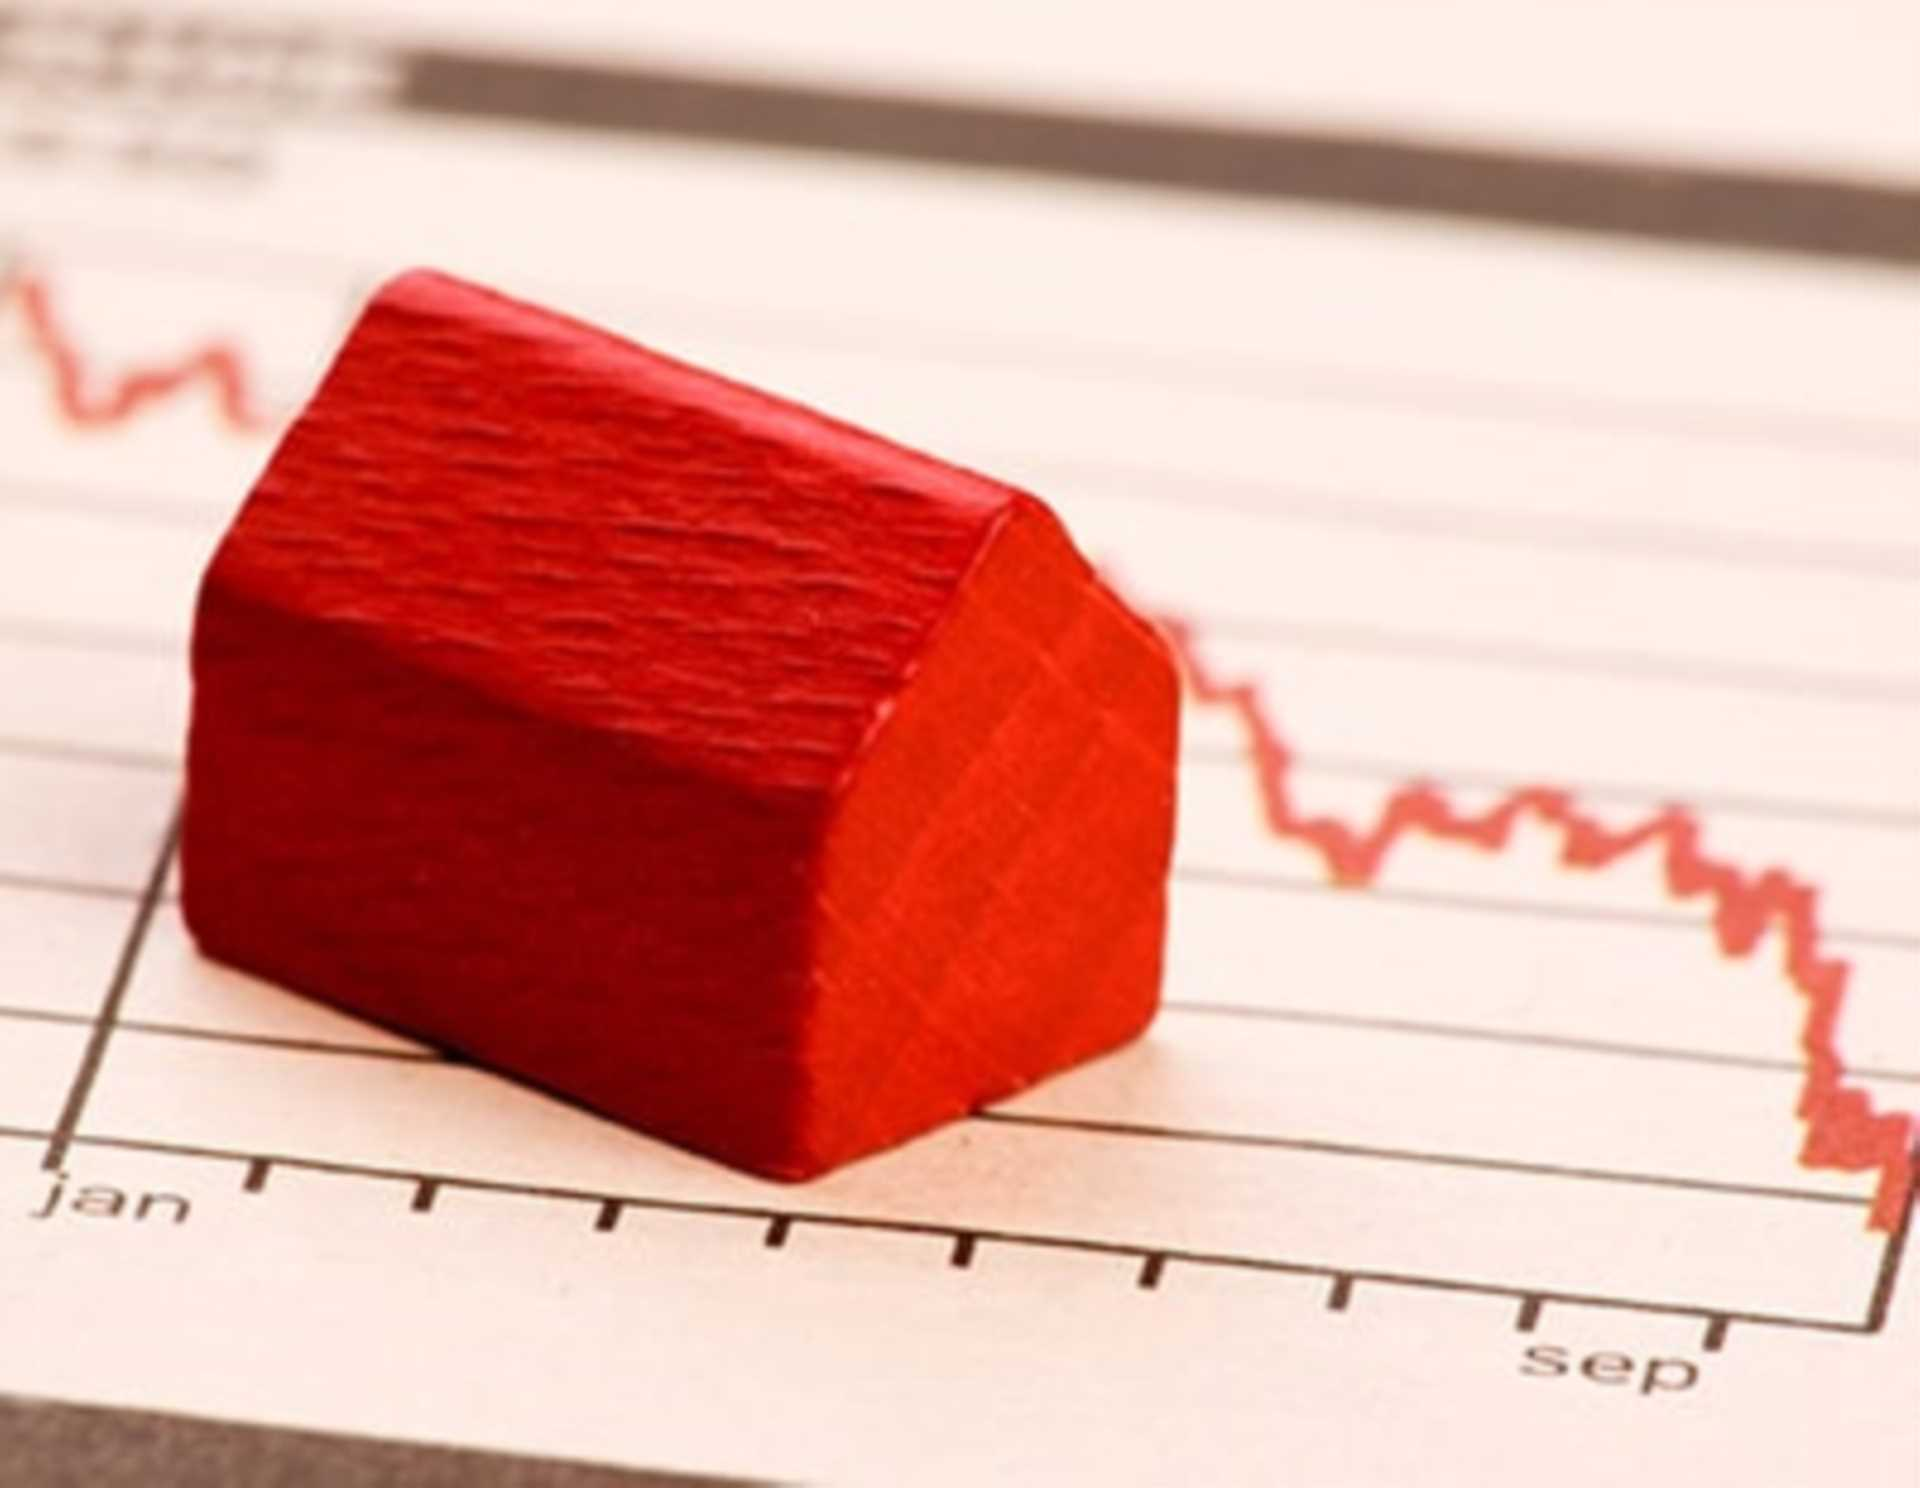 House prices soar 7.5% in a year but it may all change soon